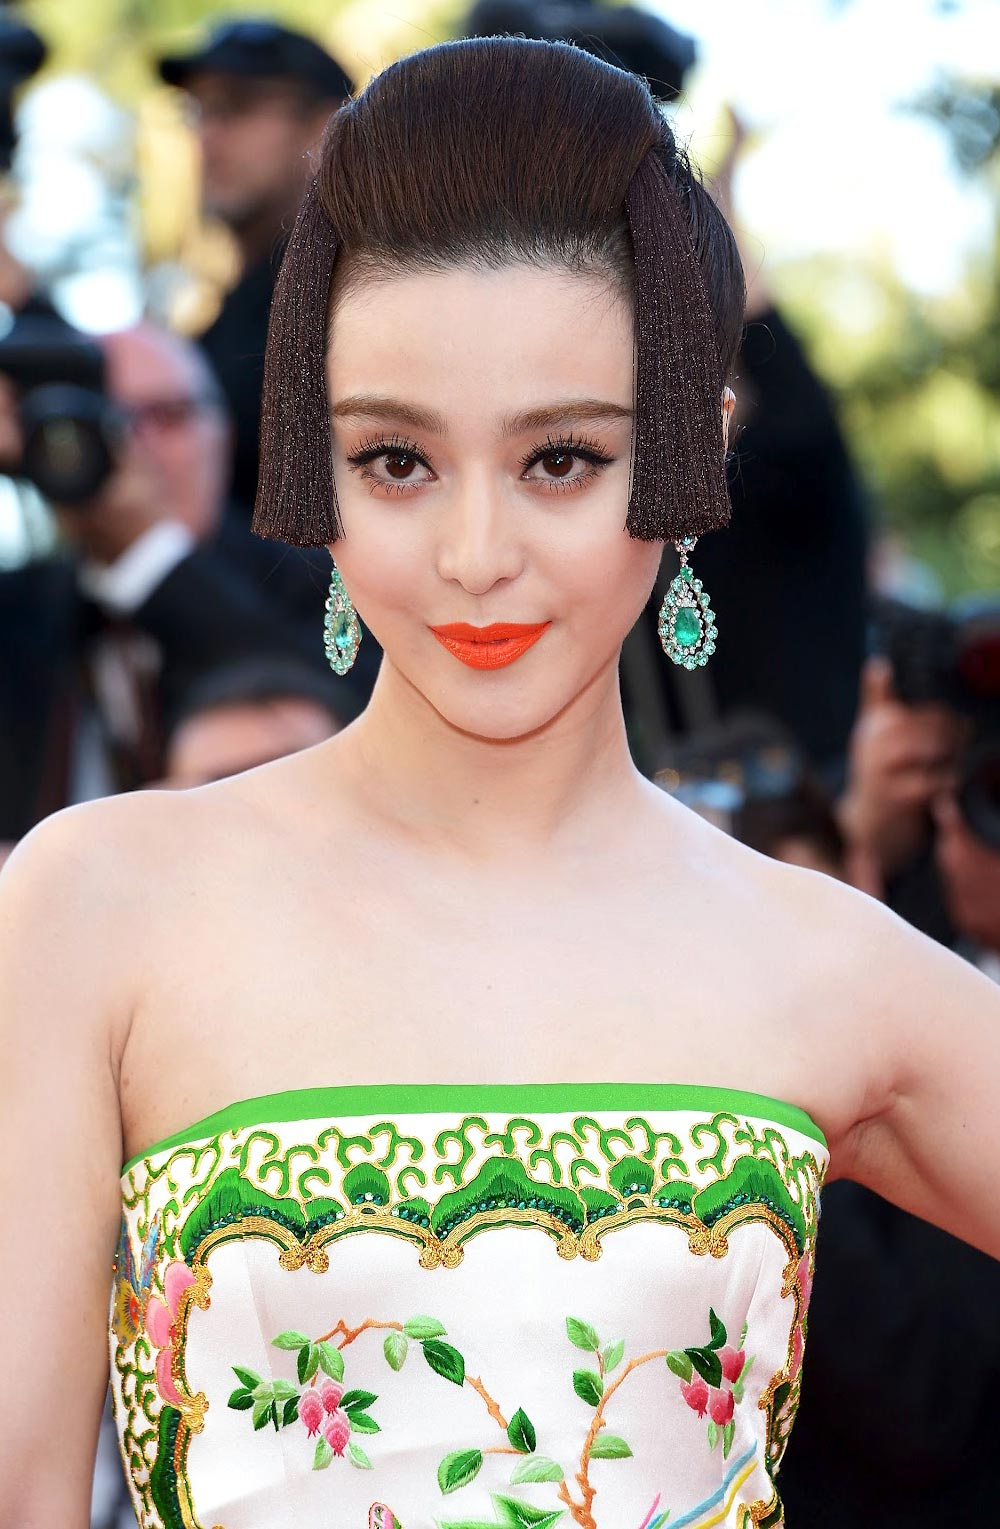 fan-bingbing-makeup-2012-cannes